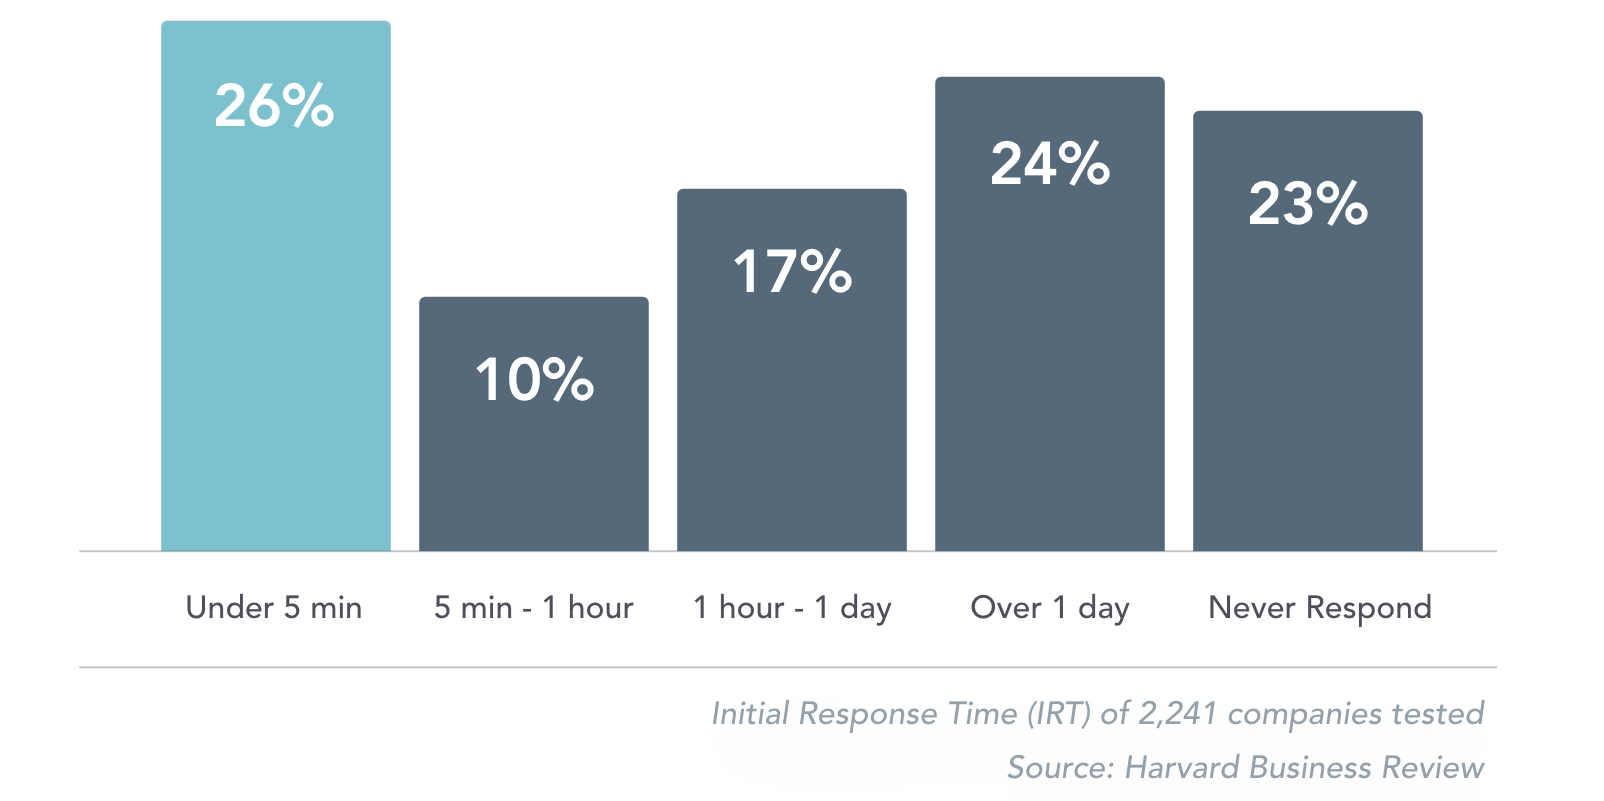 Harvard Business Review research team: Initial Response Time (IRT) of 2,241 B2B companies tested